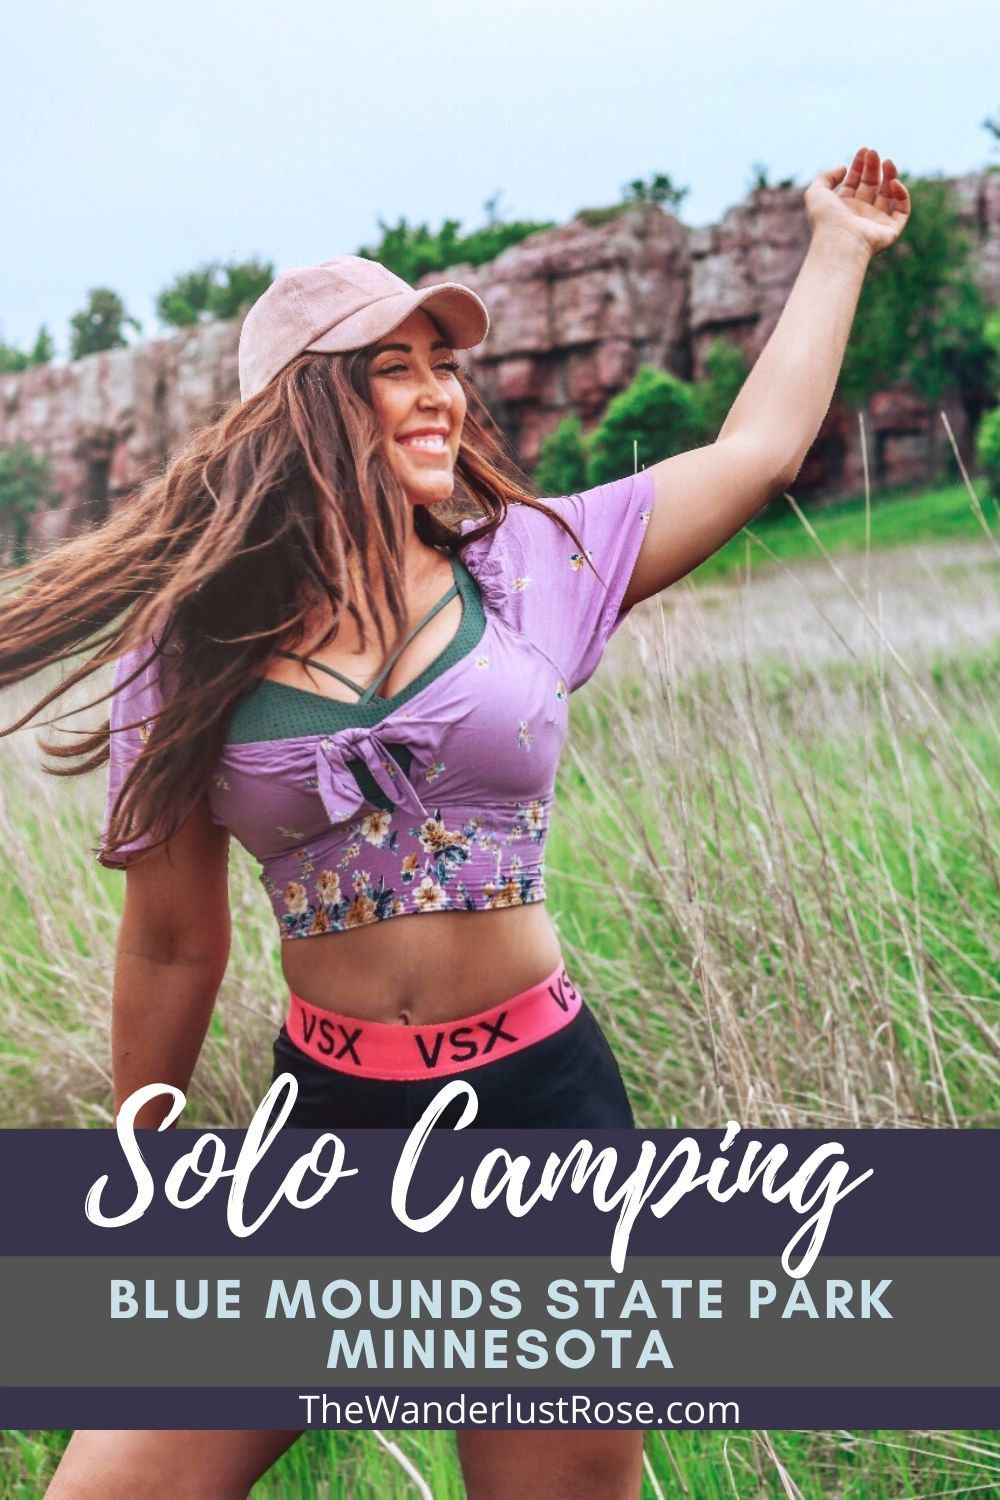 Blue mounds state park minnesota camping solo in 2020